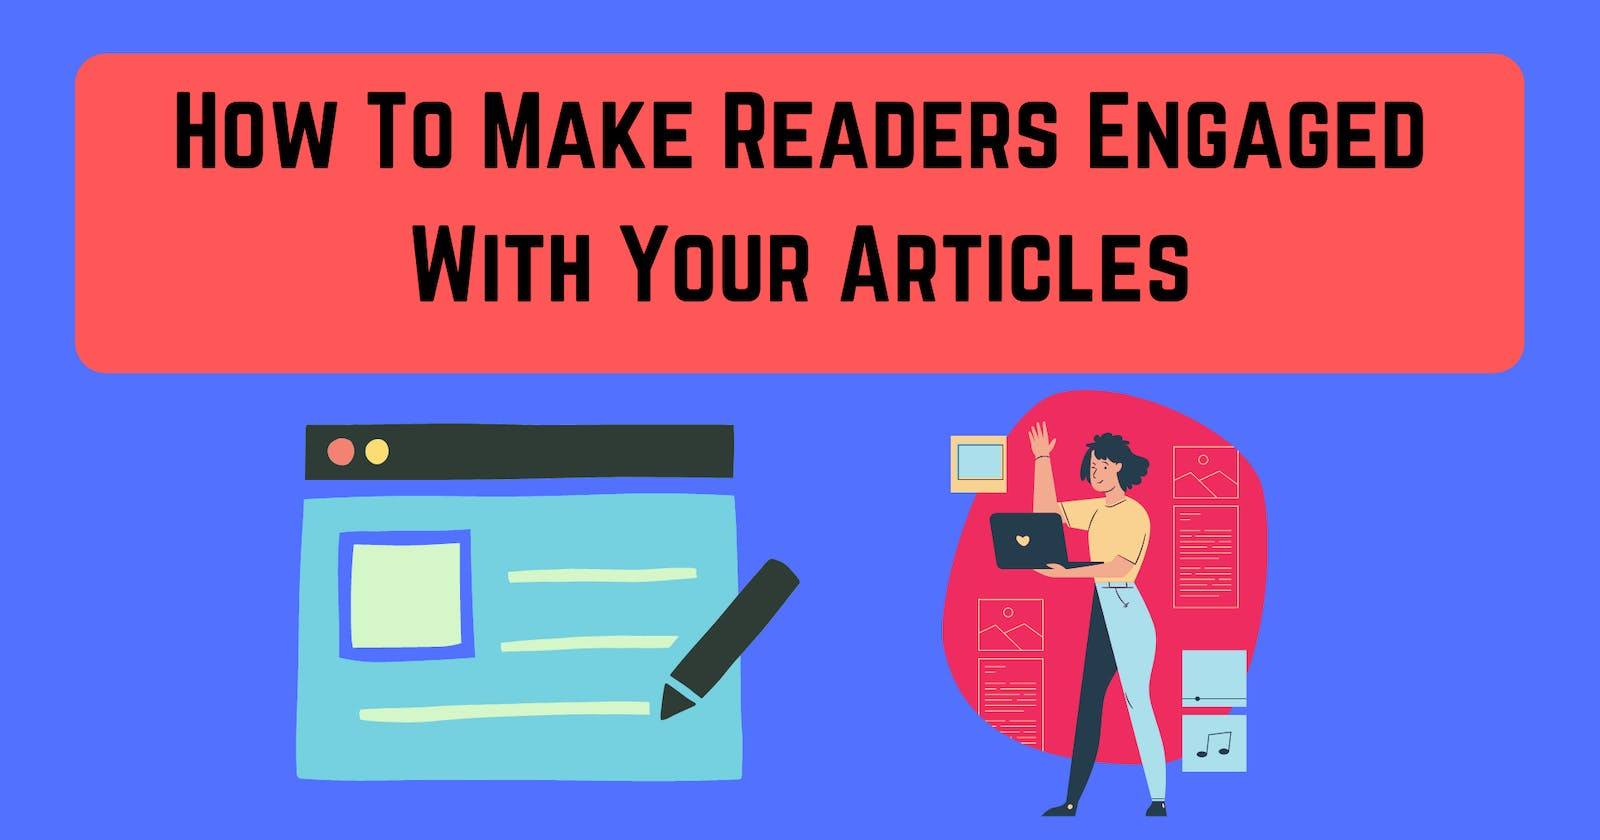 How To Make Readers Engaged With Your Articles